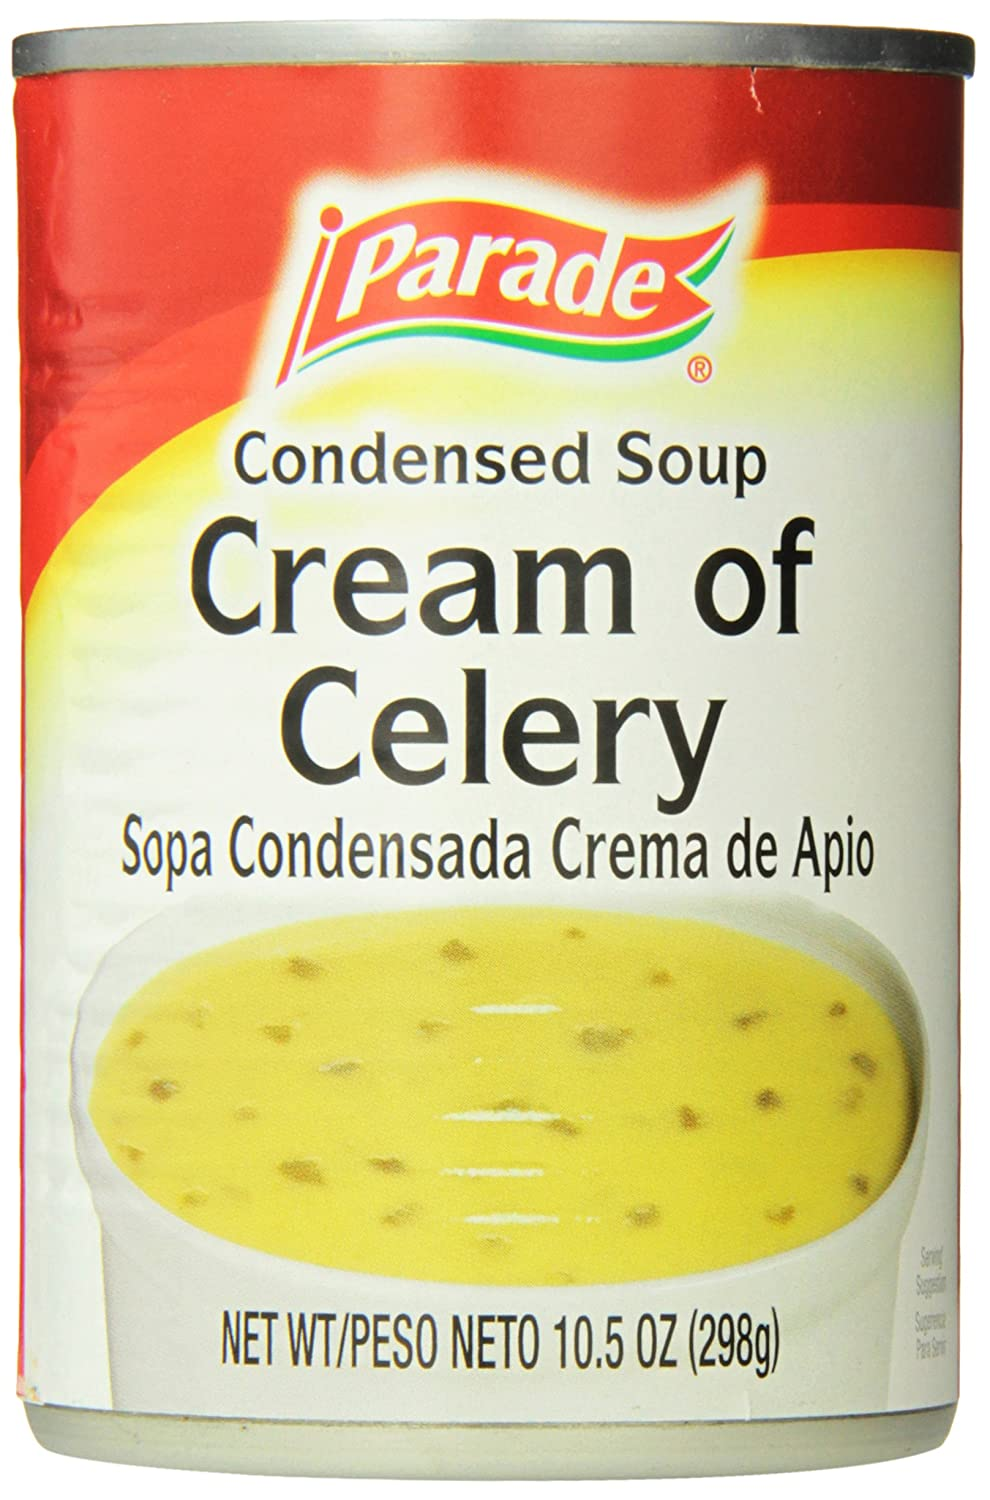 Parade Cream of Celery Soup, 10.5 Ounce (Pack of 24): Amazon.com: Grocery & Gourmet Food